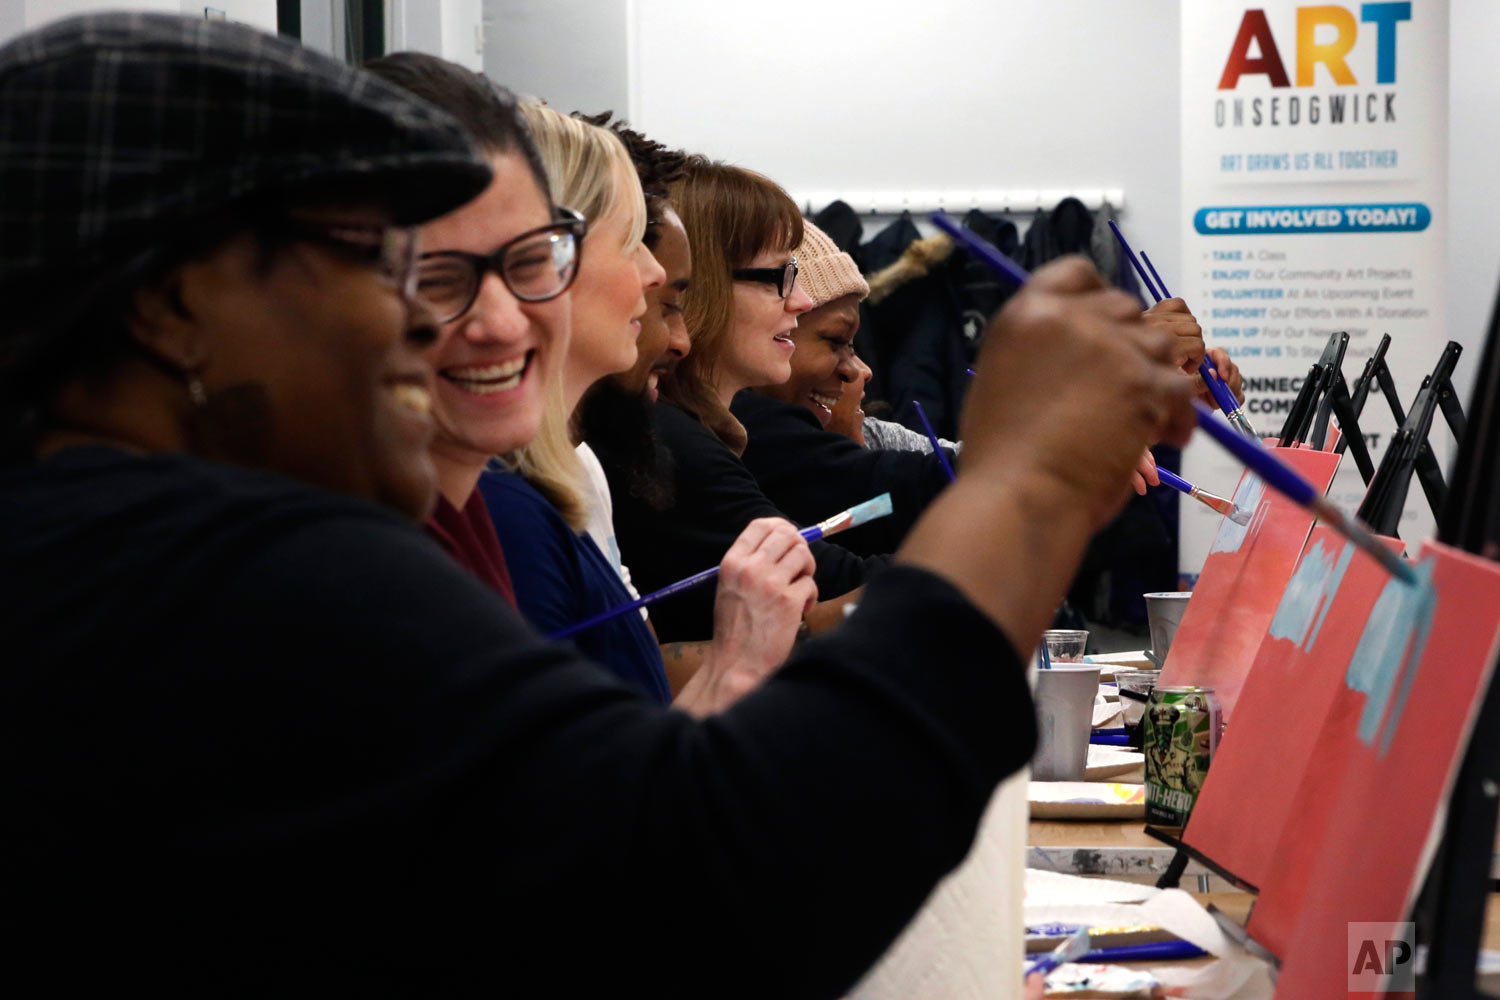 """In this Feb. 10, 2018, photo, Adell Thomas, left, cracks a joke during a """"Sip and Paint"""" class for adults at Art on Sedgwick, in Chicago. The class brings people from different backgrounds together to socialize. Art on Sedgwick was founded by Charlie Branda, center in glasses, as a way to unify a neighborhood that is divided by income and race. The core group of regulars is one of the studio's successes. """"But we're nowhere near where I want us to be,"""" says Thomas, who has become a board member at Art on Sedgwick. (AP Photo/Martha Irvine)"""